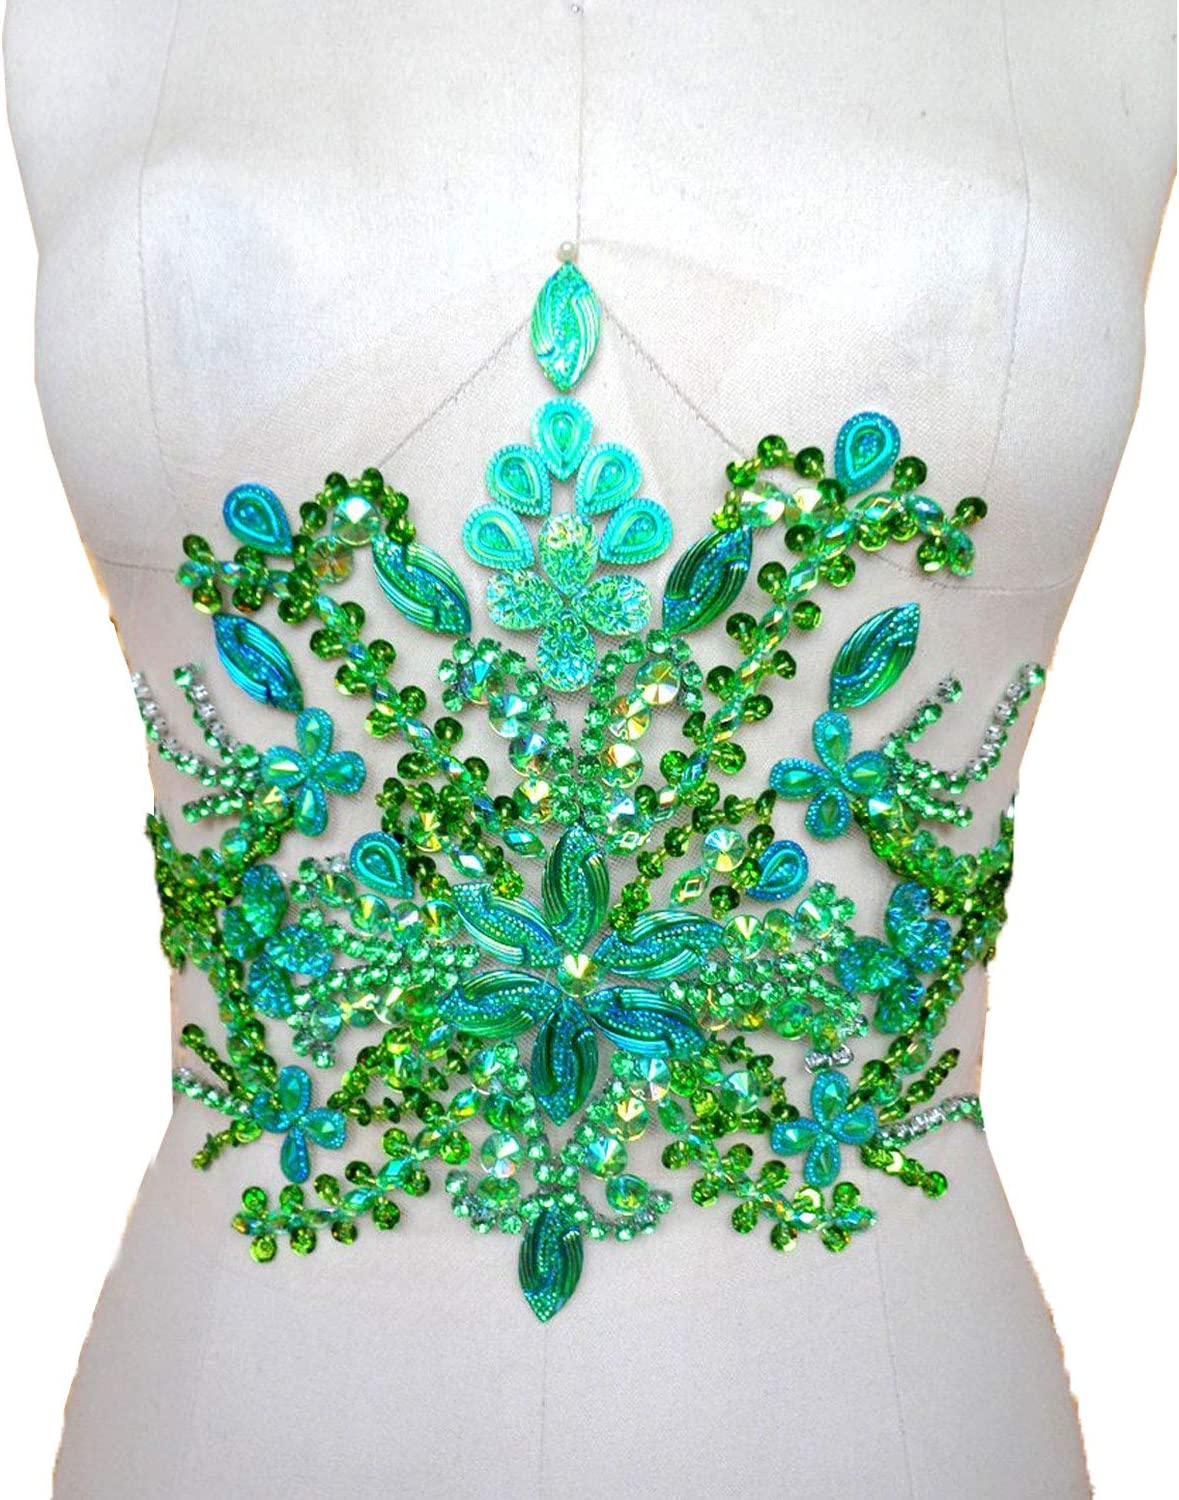 Rhinestone Applique Dress Belt Purchase Limited Special Price Colorful L Beaded Stones Sequined